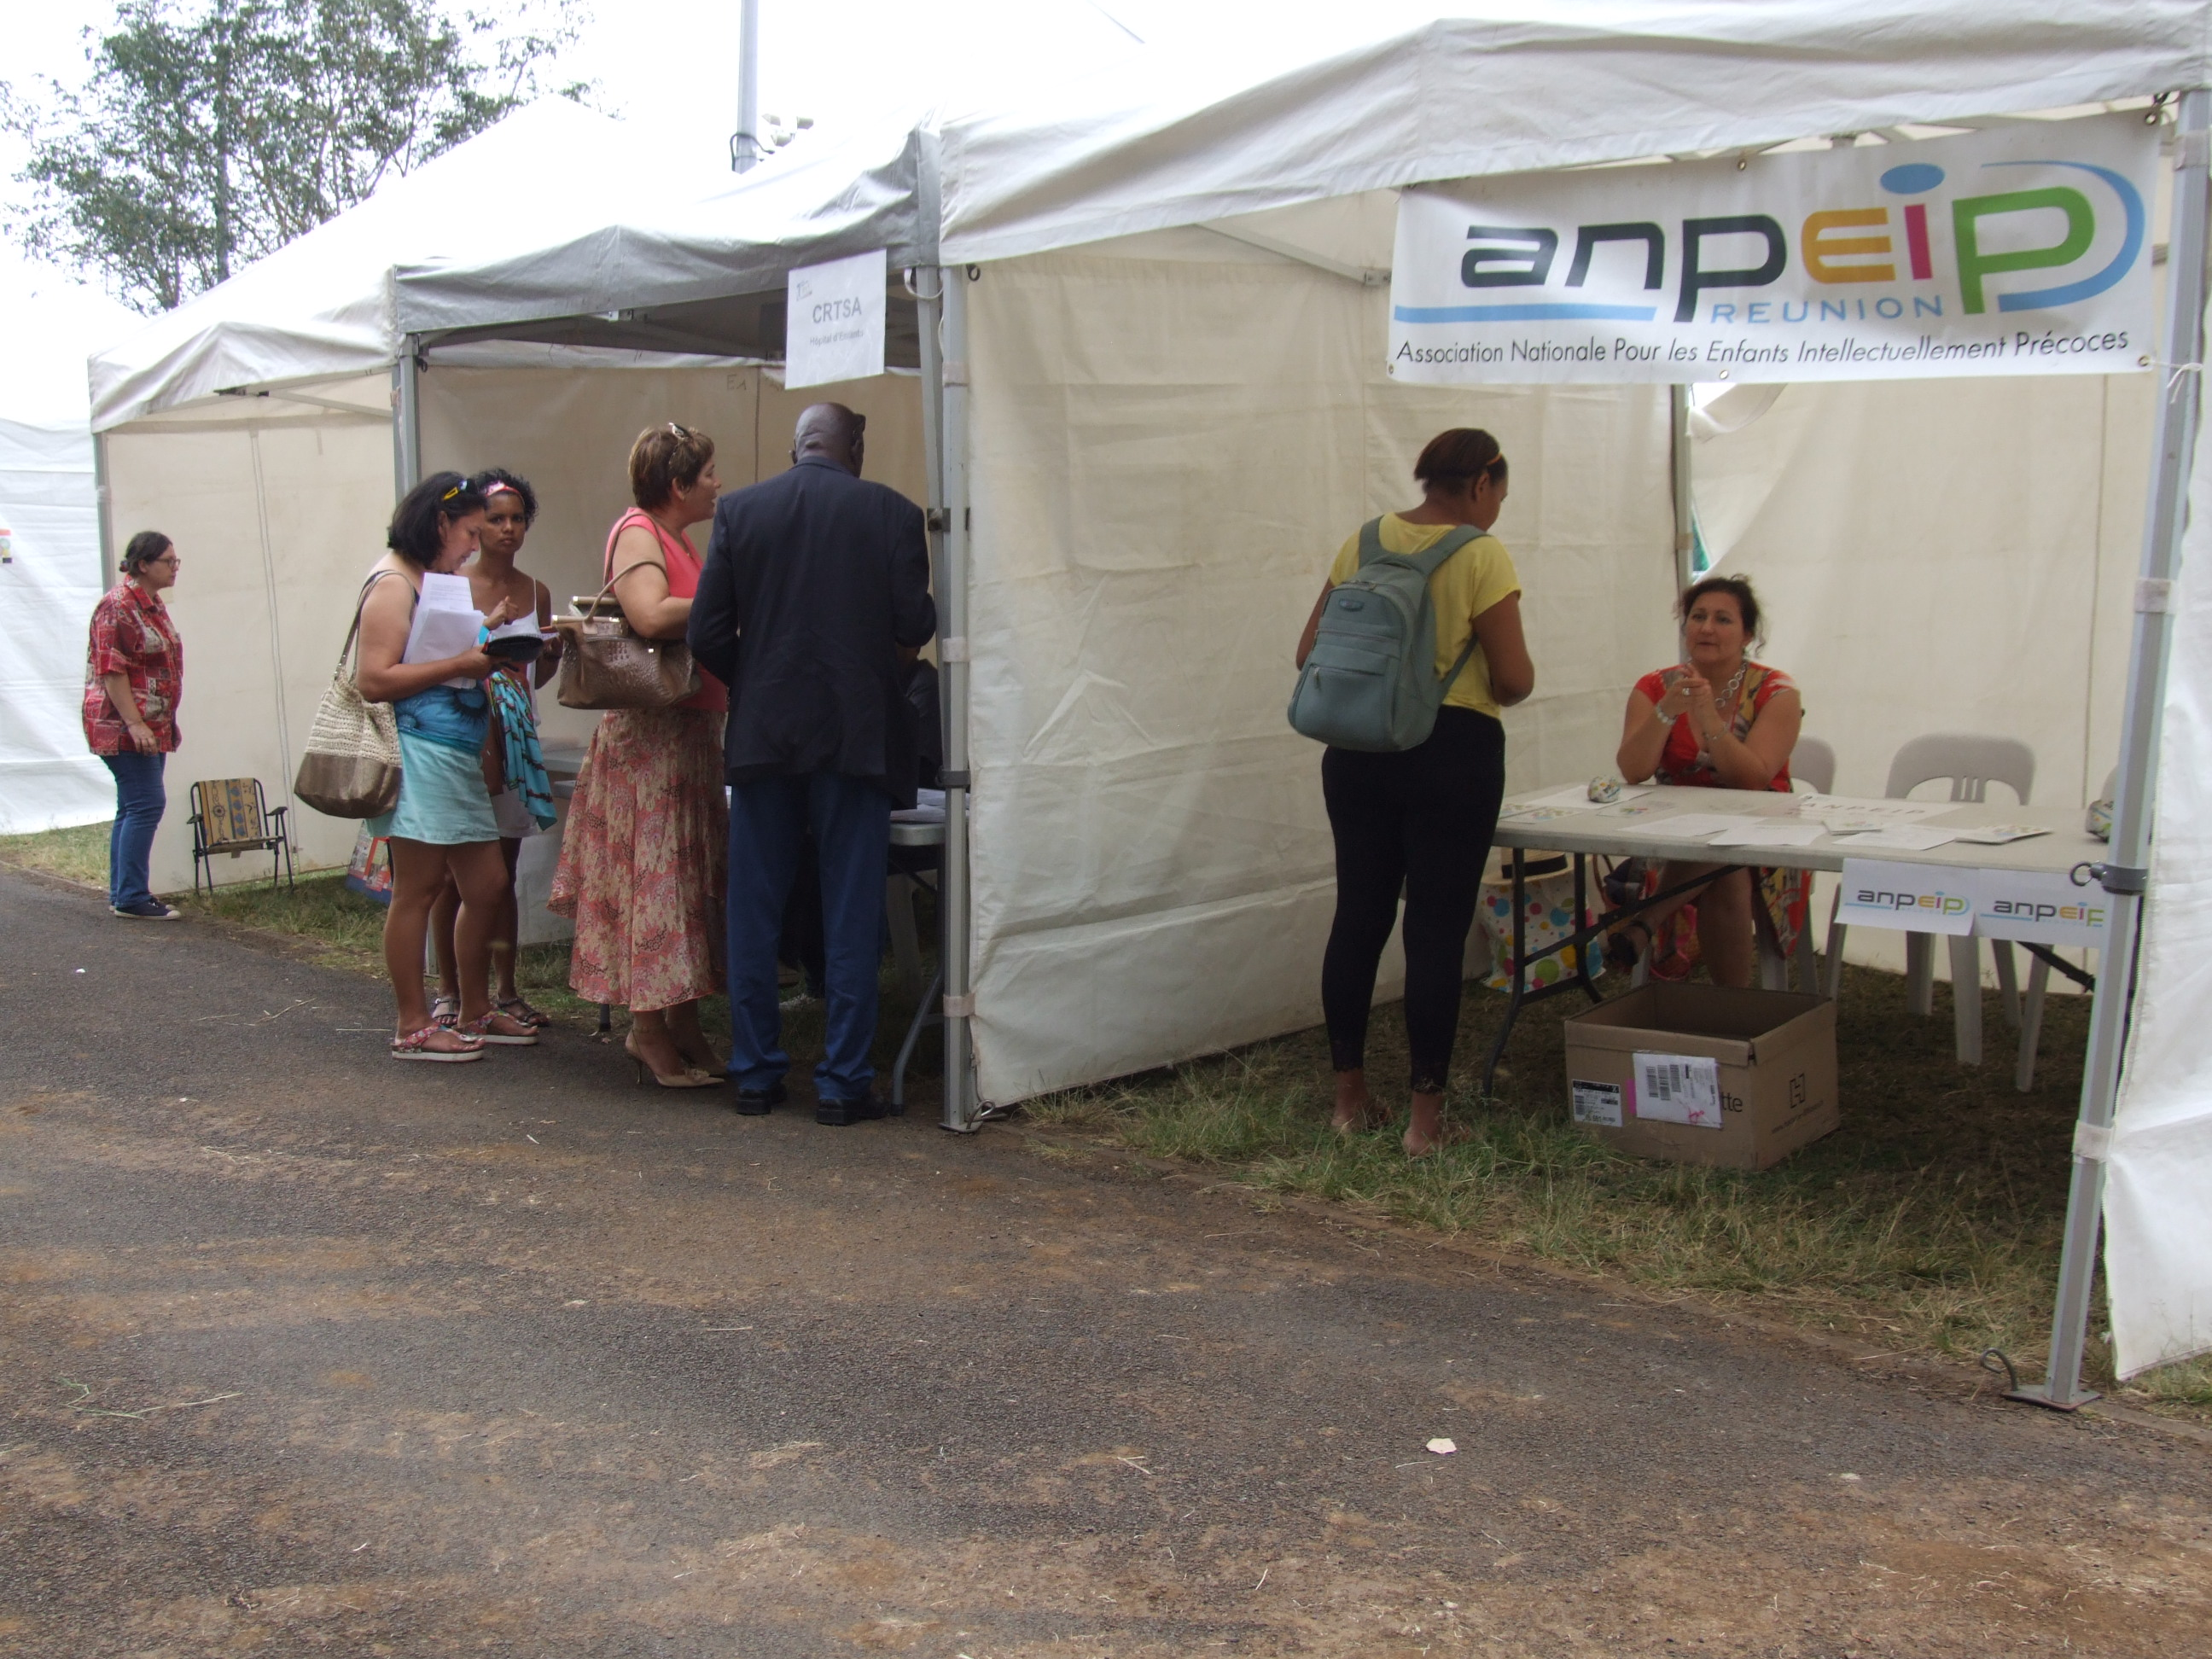 Photo Journee Nationale des Dys 2015 - 10 - Stand Association Nationale Pour les Enfants Intellectuellement Precoces.JPG